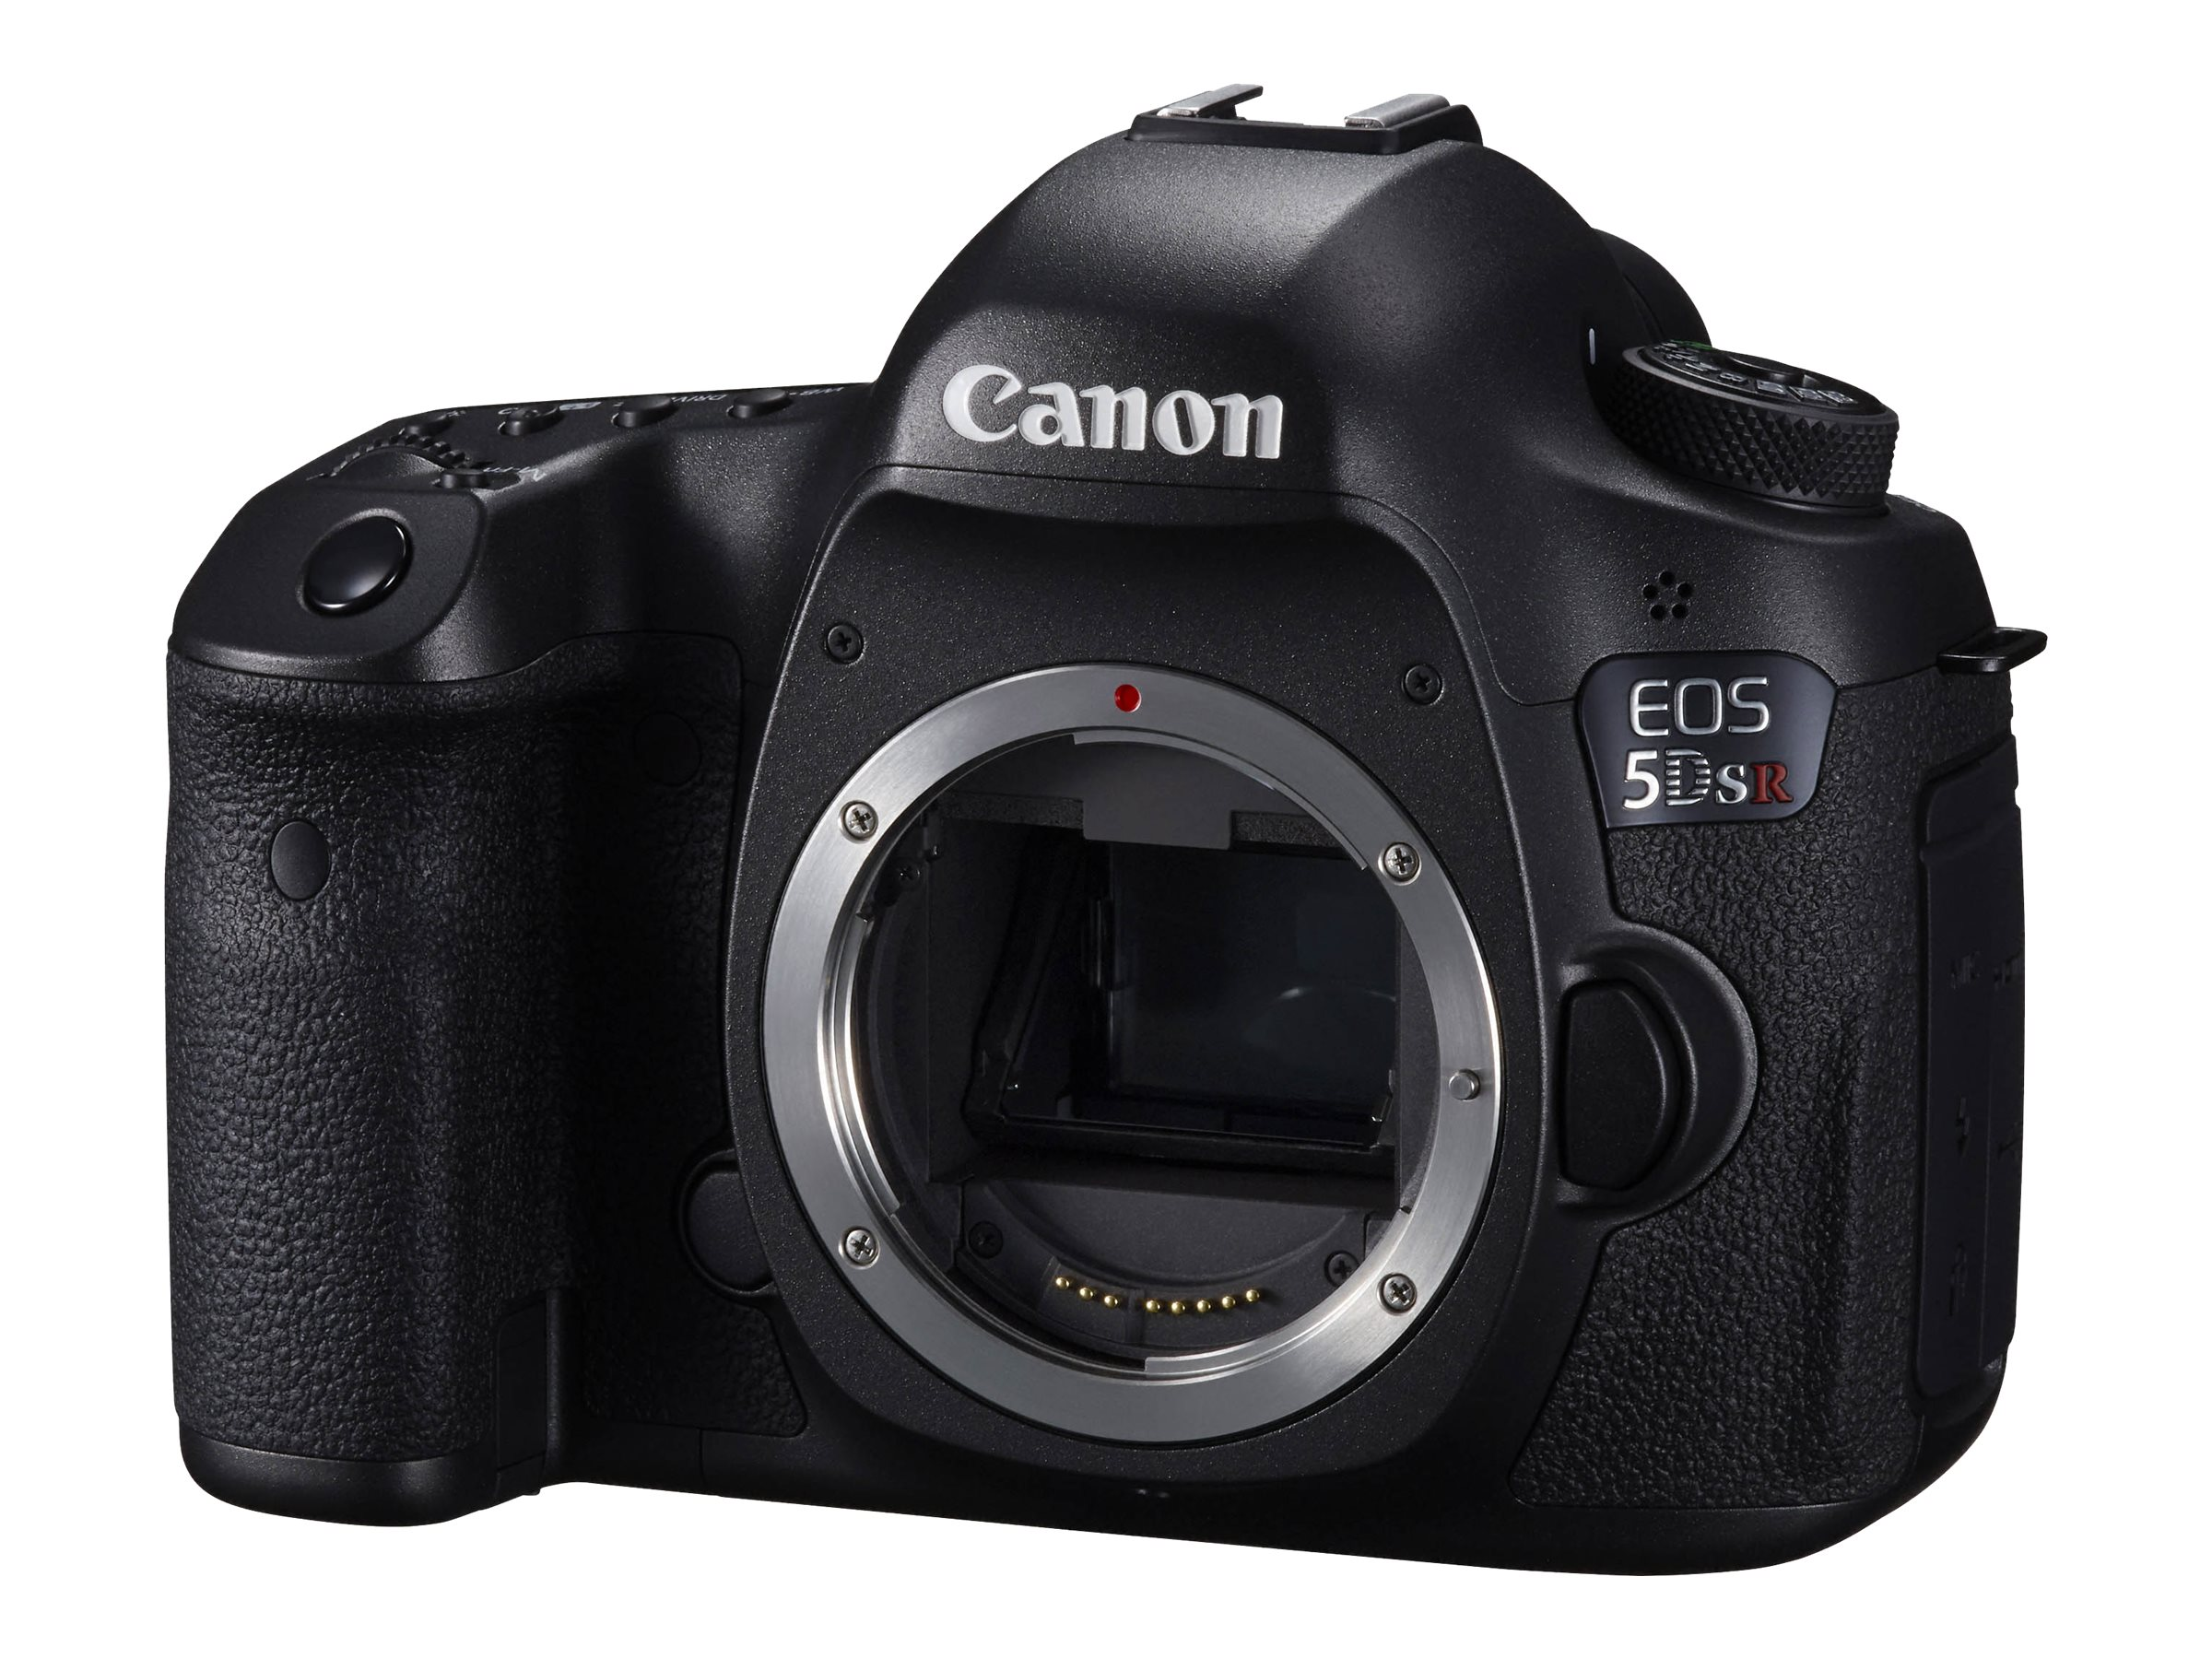 Canon EOS 5DS R Camera (Body Only), Black, 0582C002, 18924762, Cameras - Digital - SLR